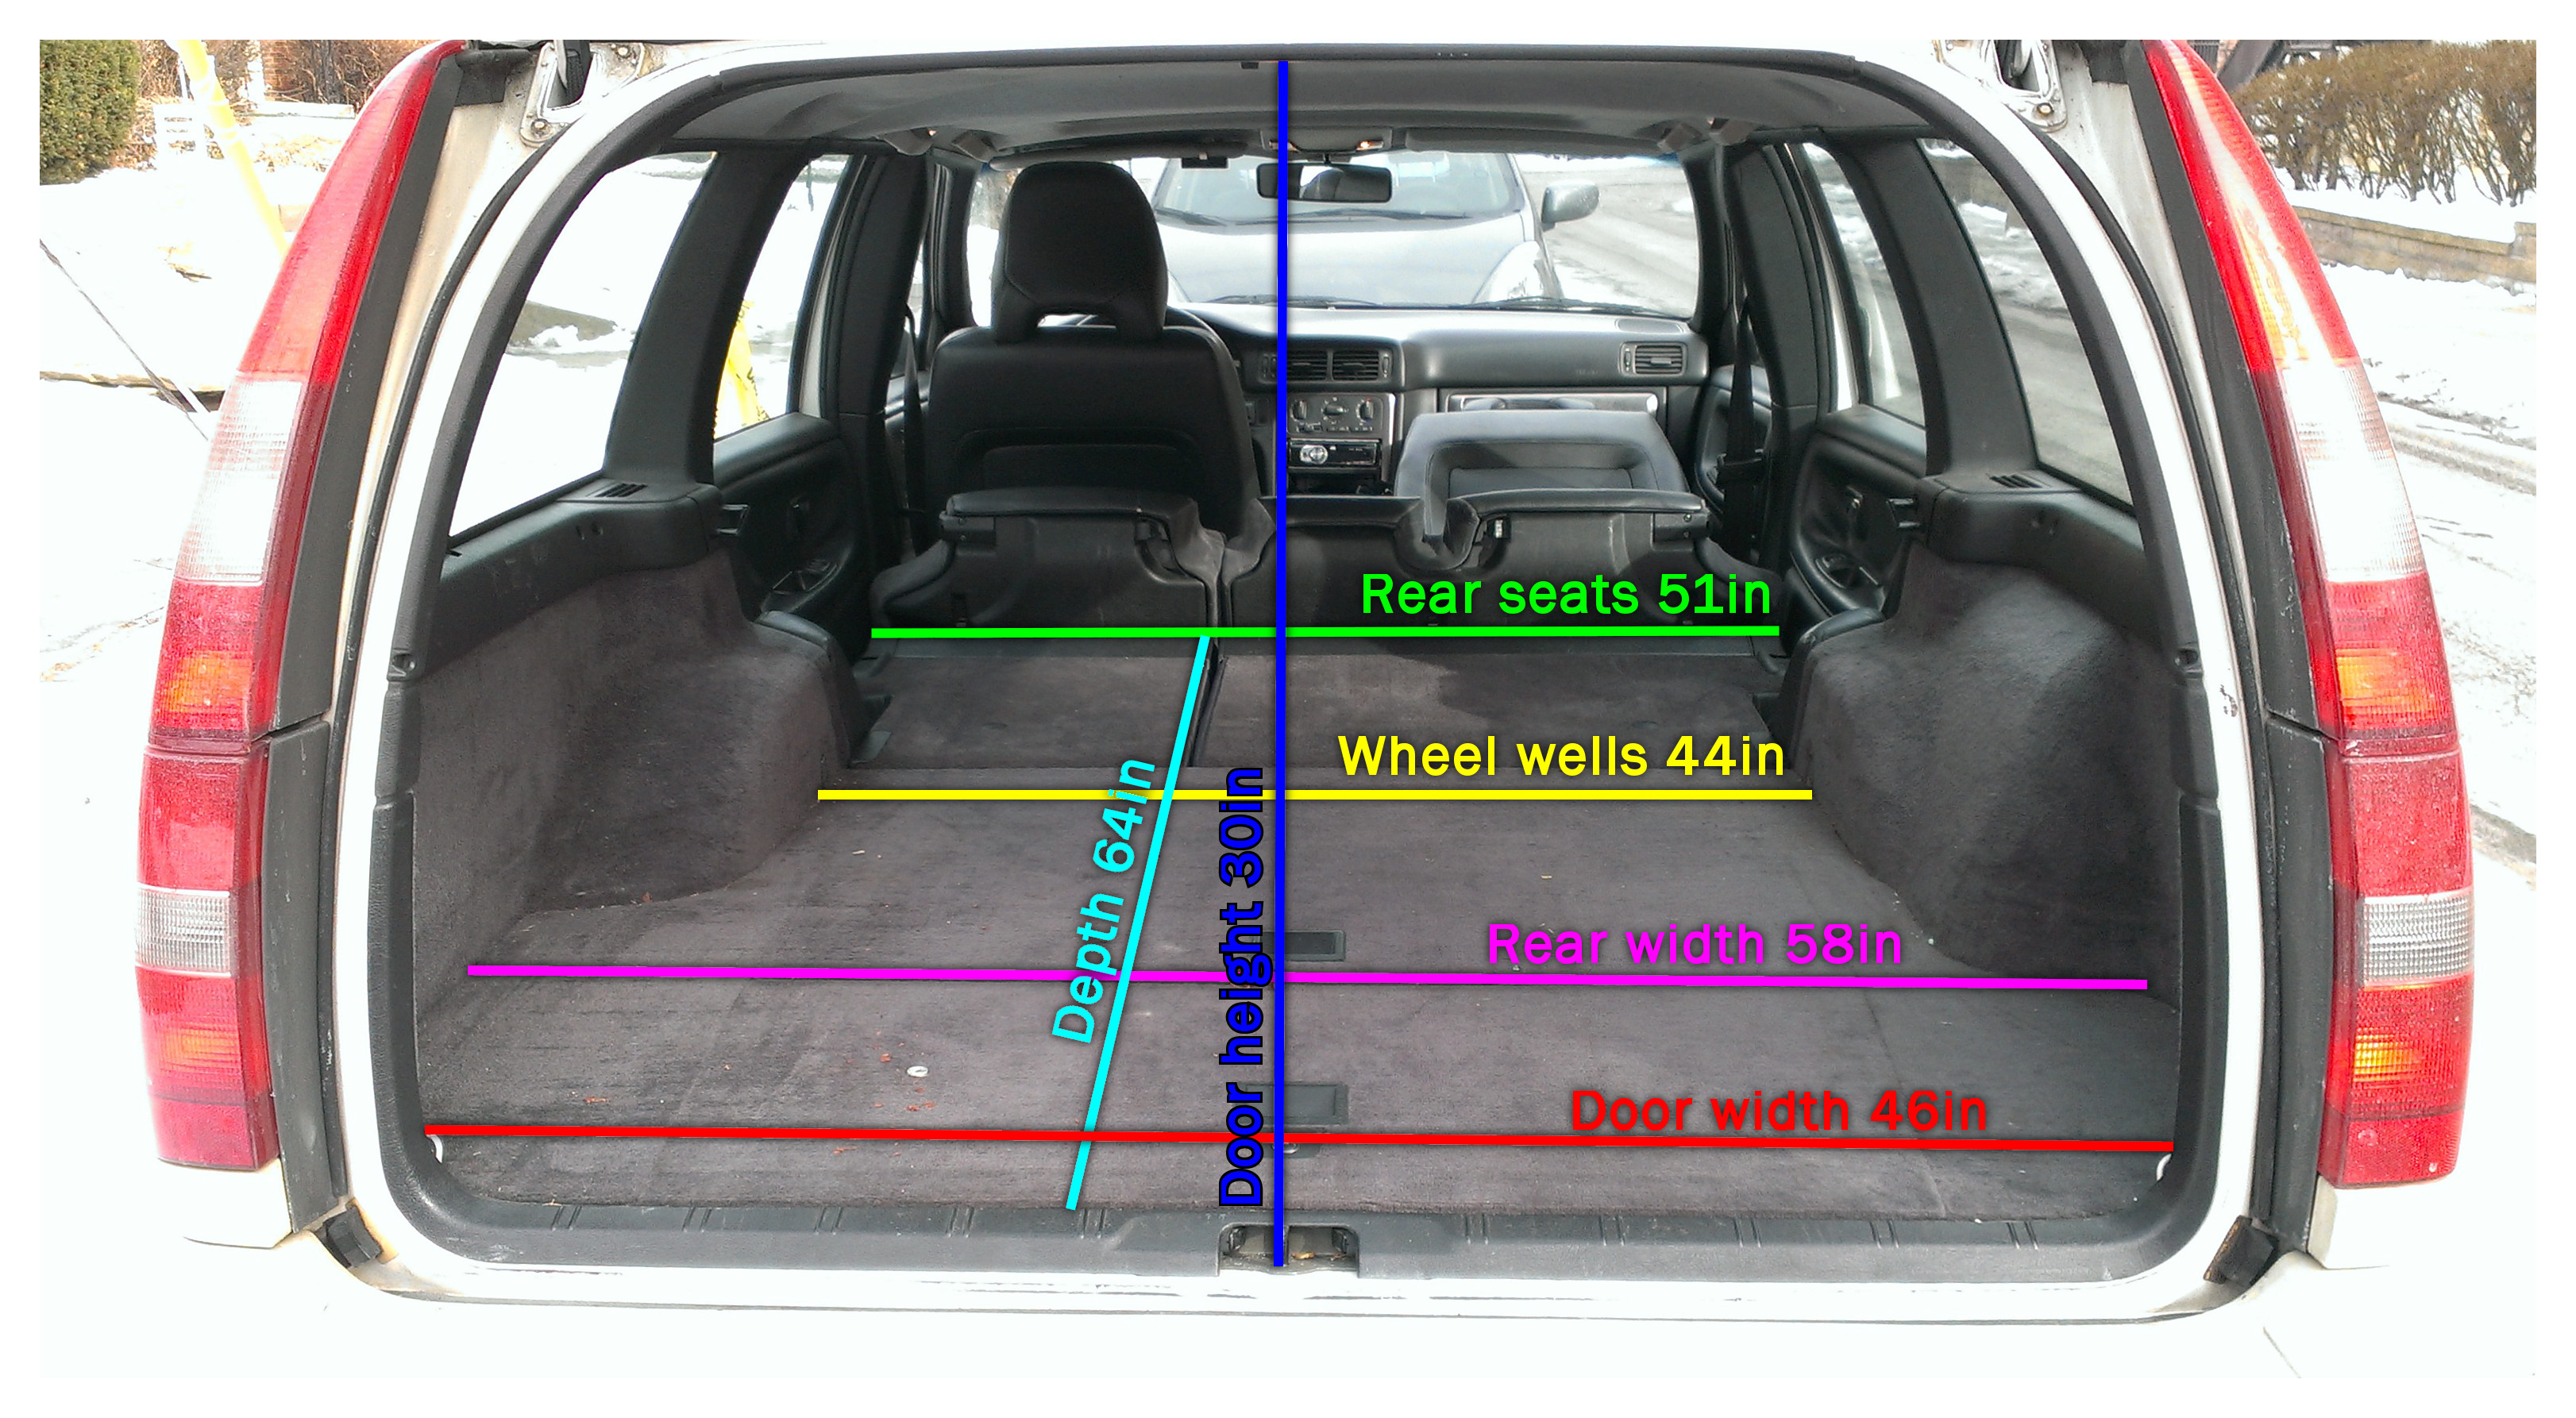 P80 Wagon Hatch Dimensions Mvs